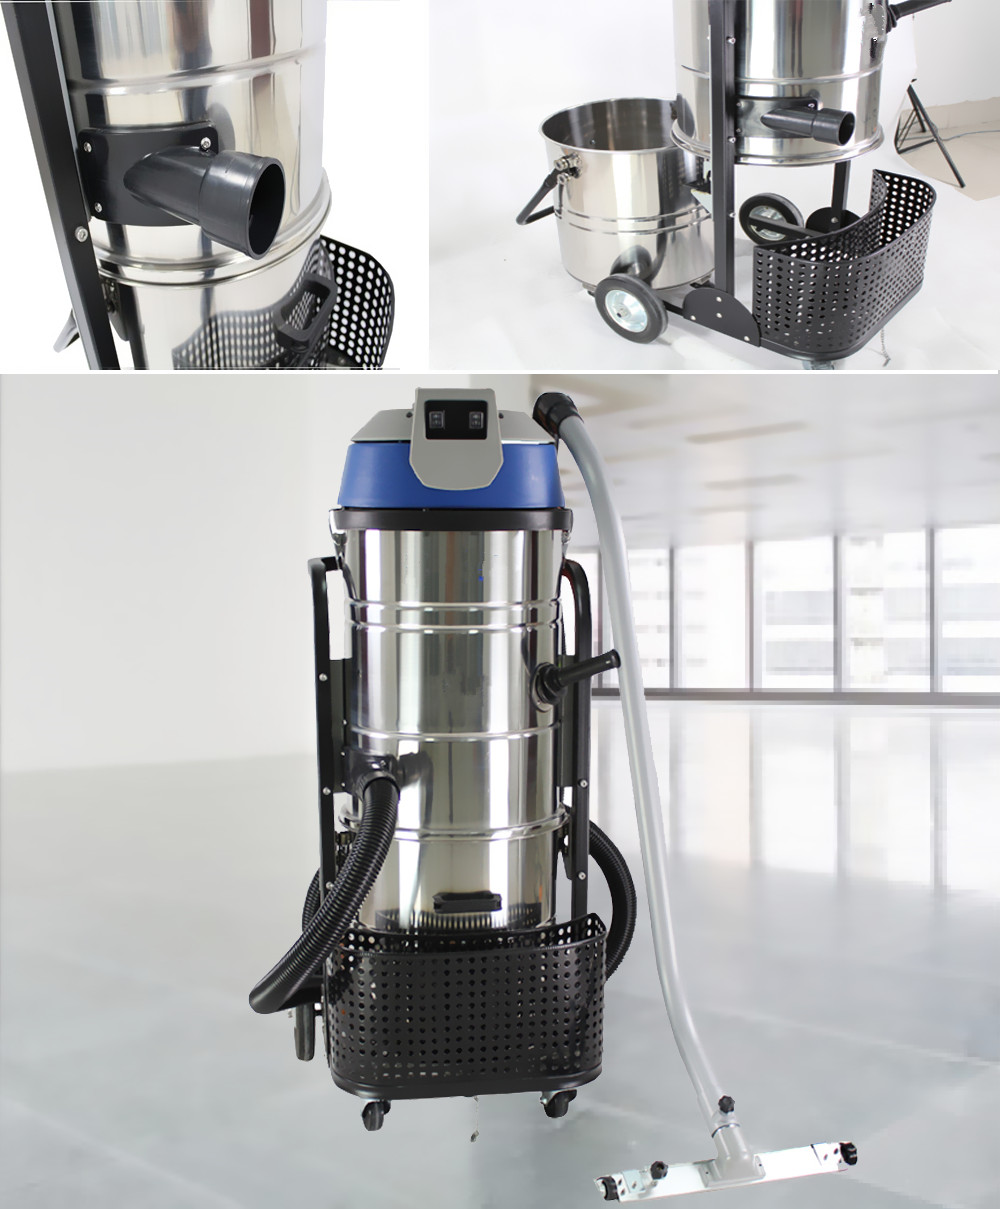 Carpet cleaning equipment for sale with-Buy Wet Dry Vacuum Cleaner,Vacuum Cleaner,Industrial Vacuum Cleaner,Dry Vacuum Cleaner,Industrial Floor Vacuum Cleaners,Industrial Dust Cleaner